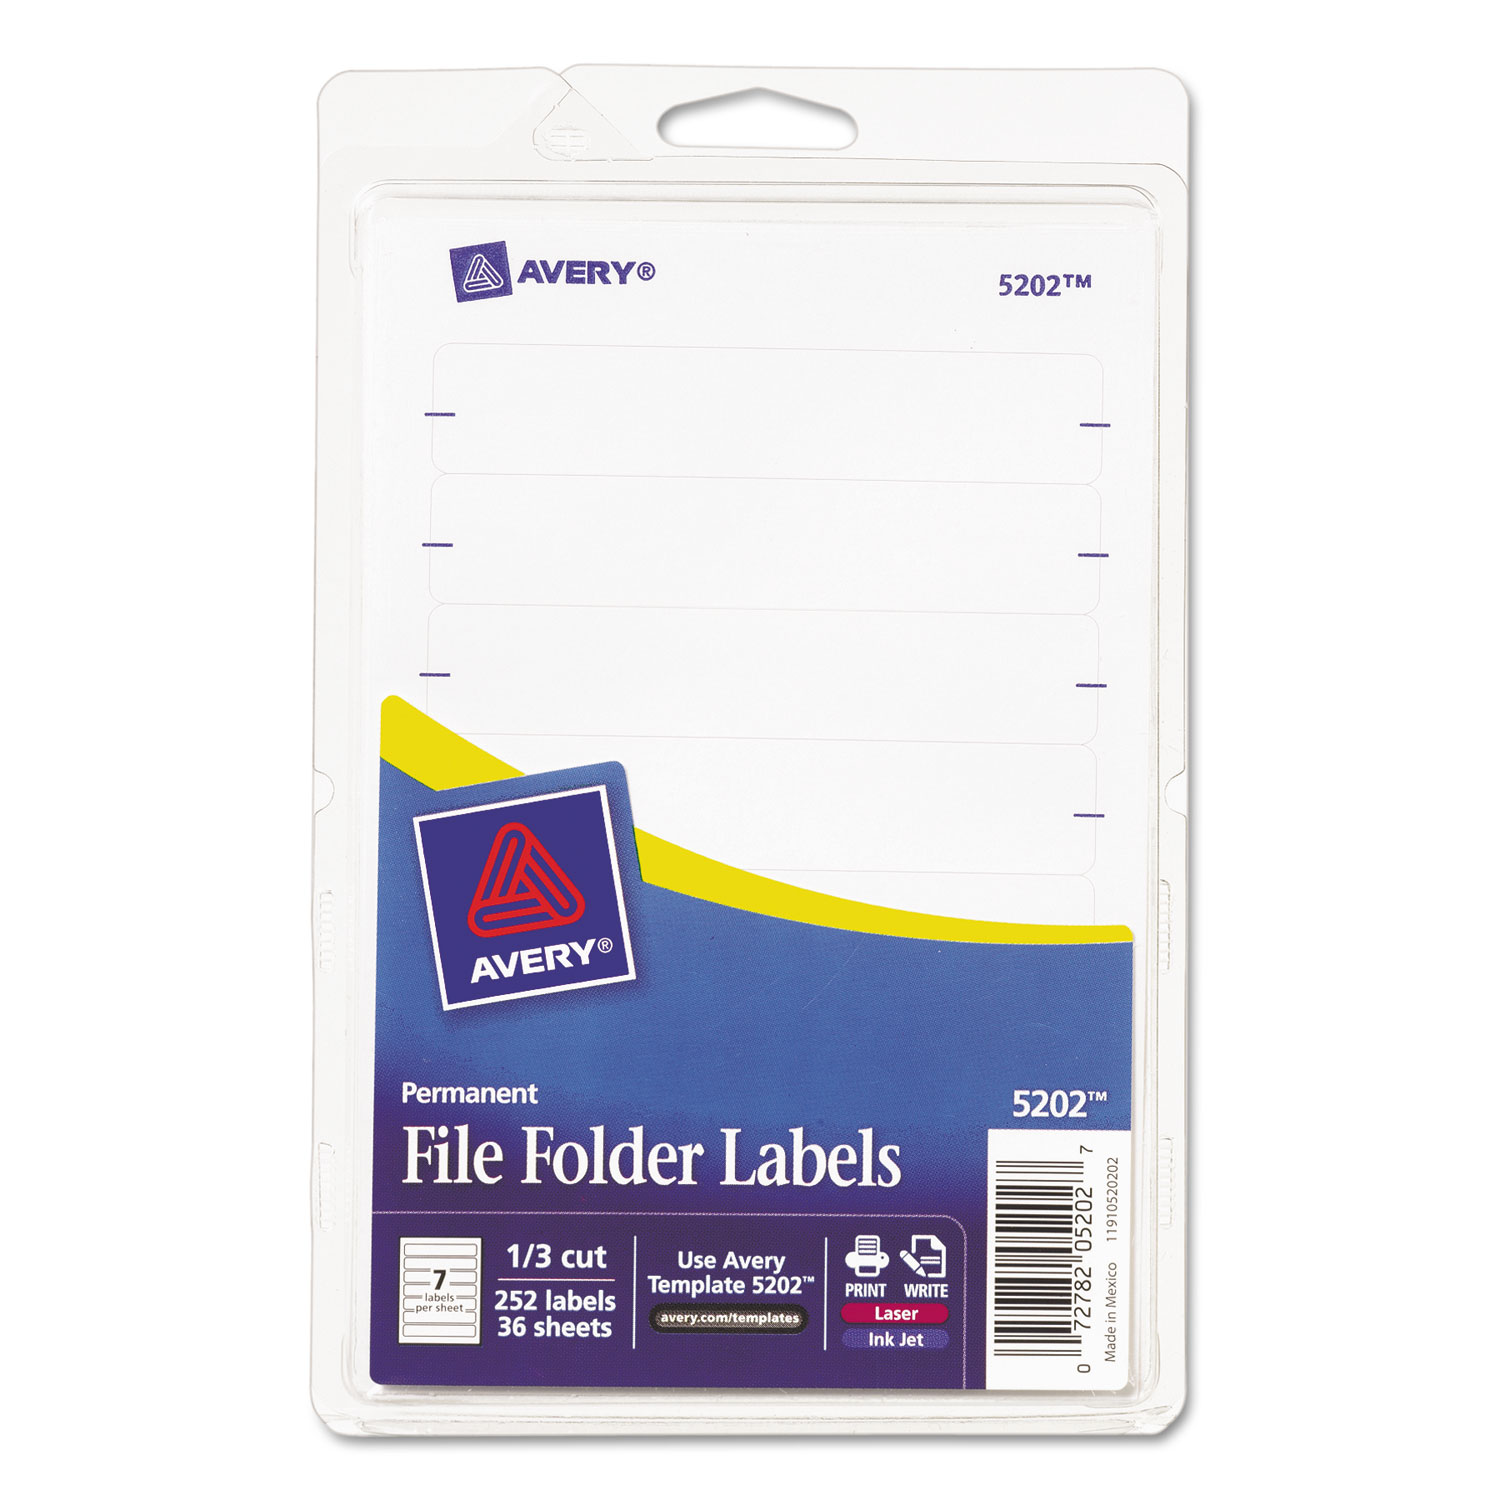 Print or Write File Folder Labels by Avery® AVE05202 ...